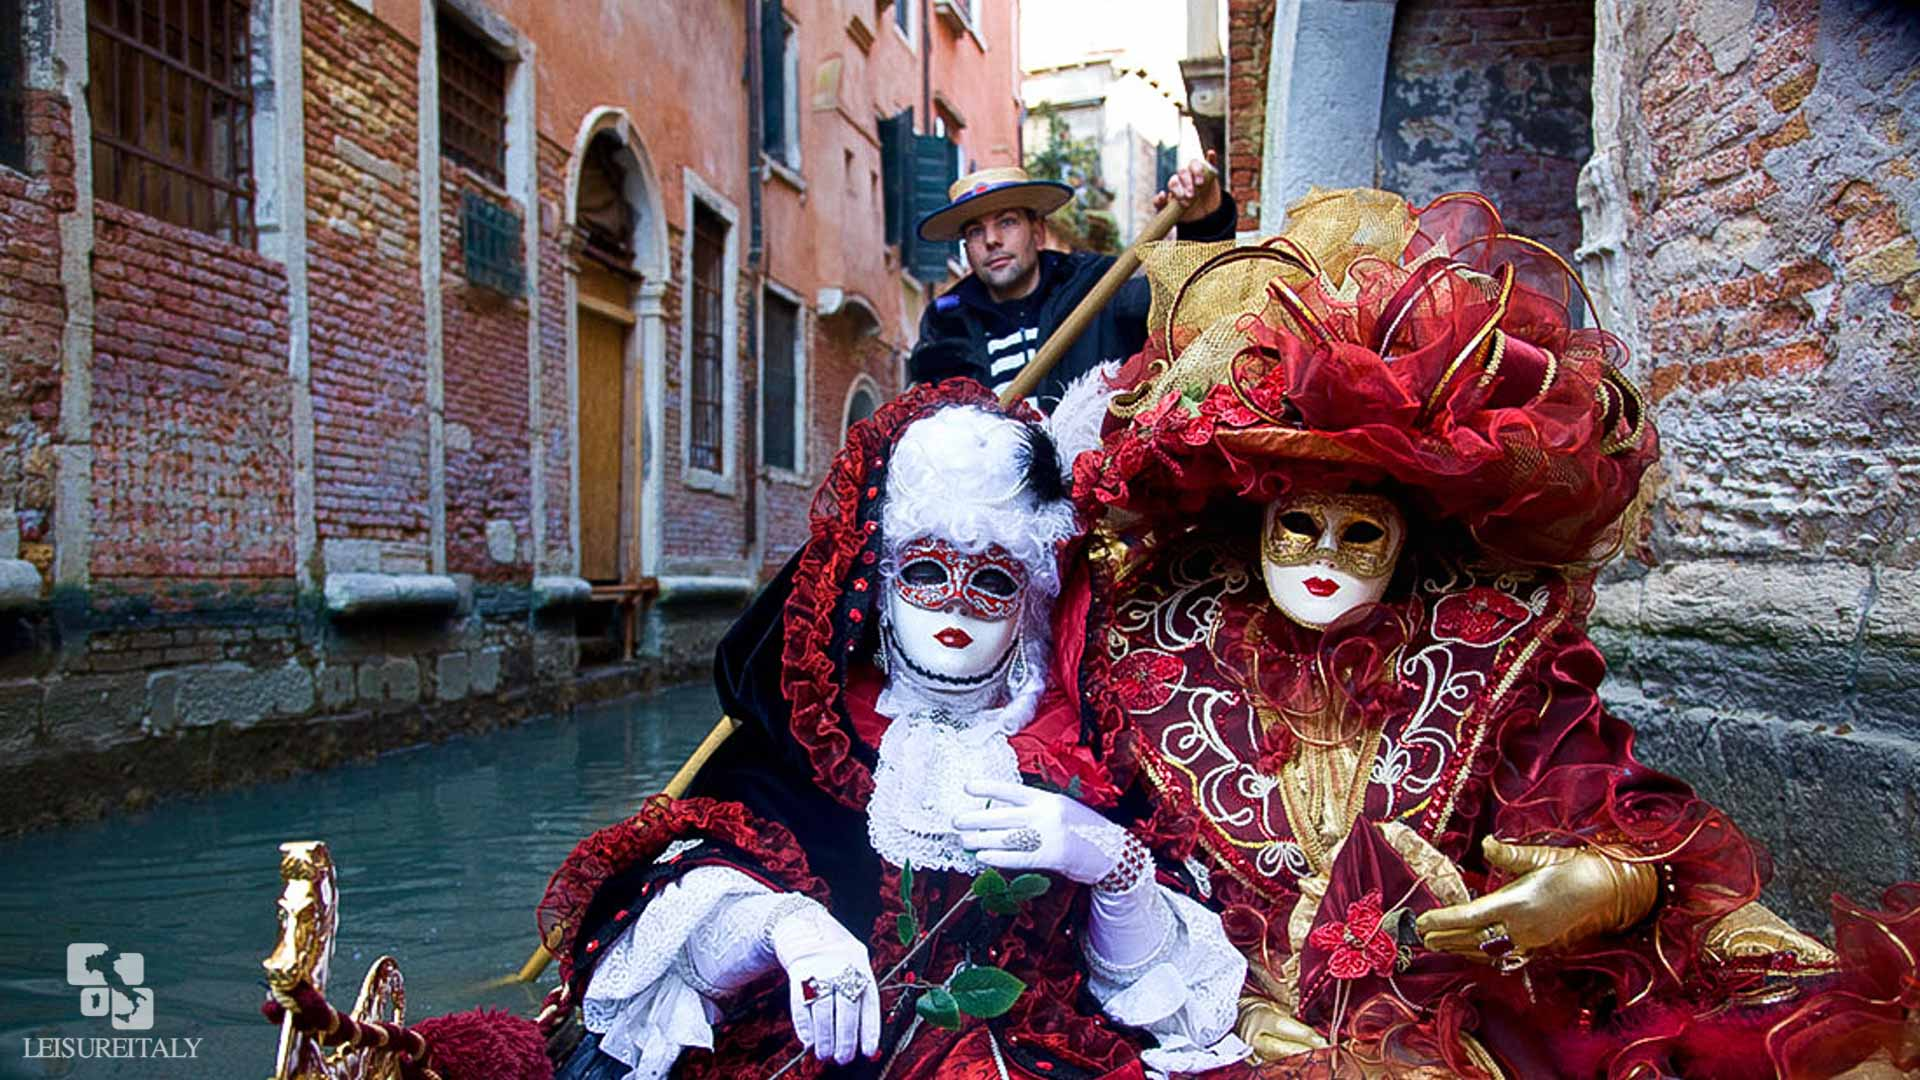 Masks on a Gondola